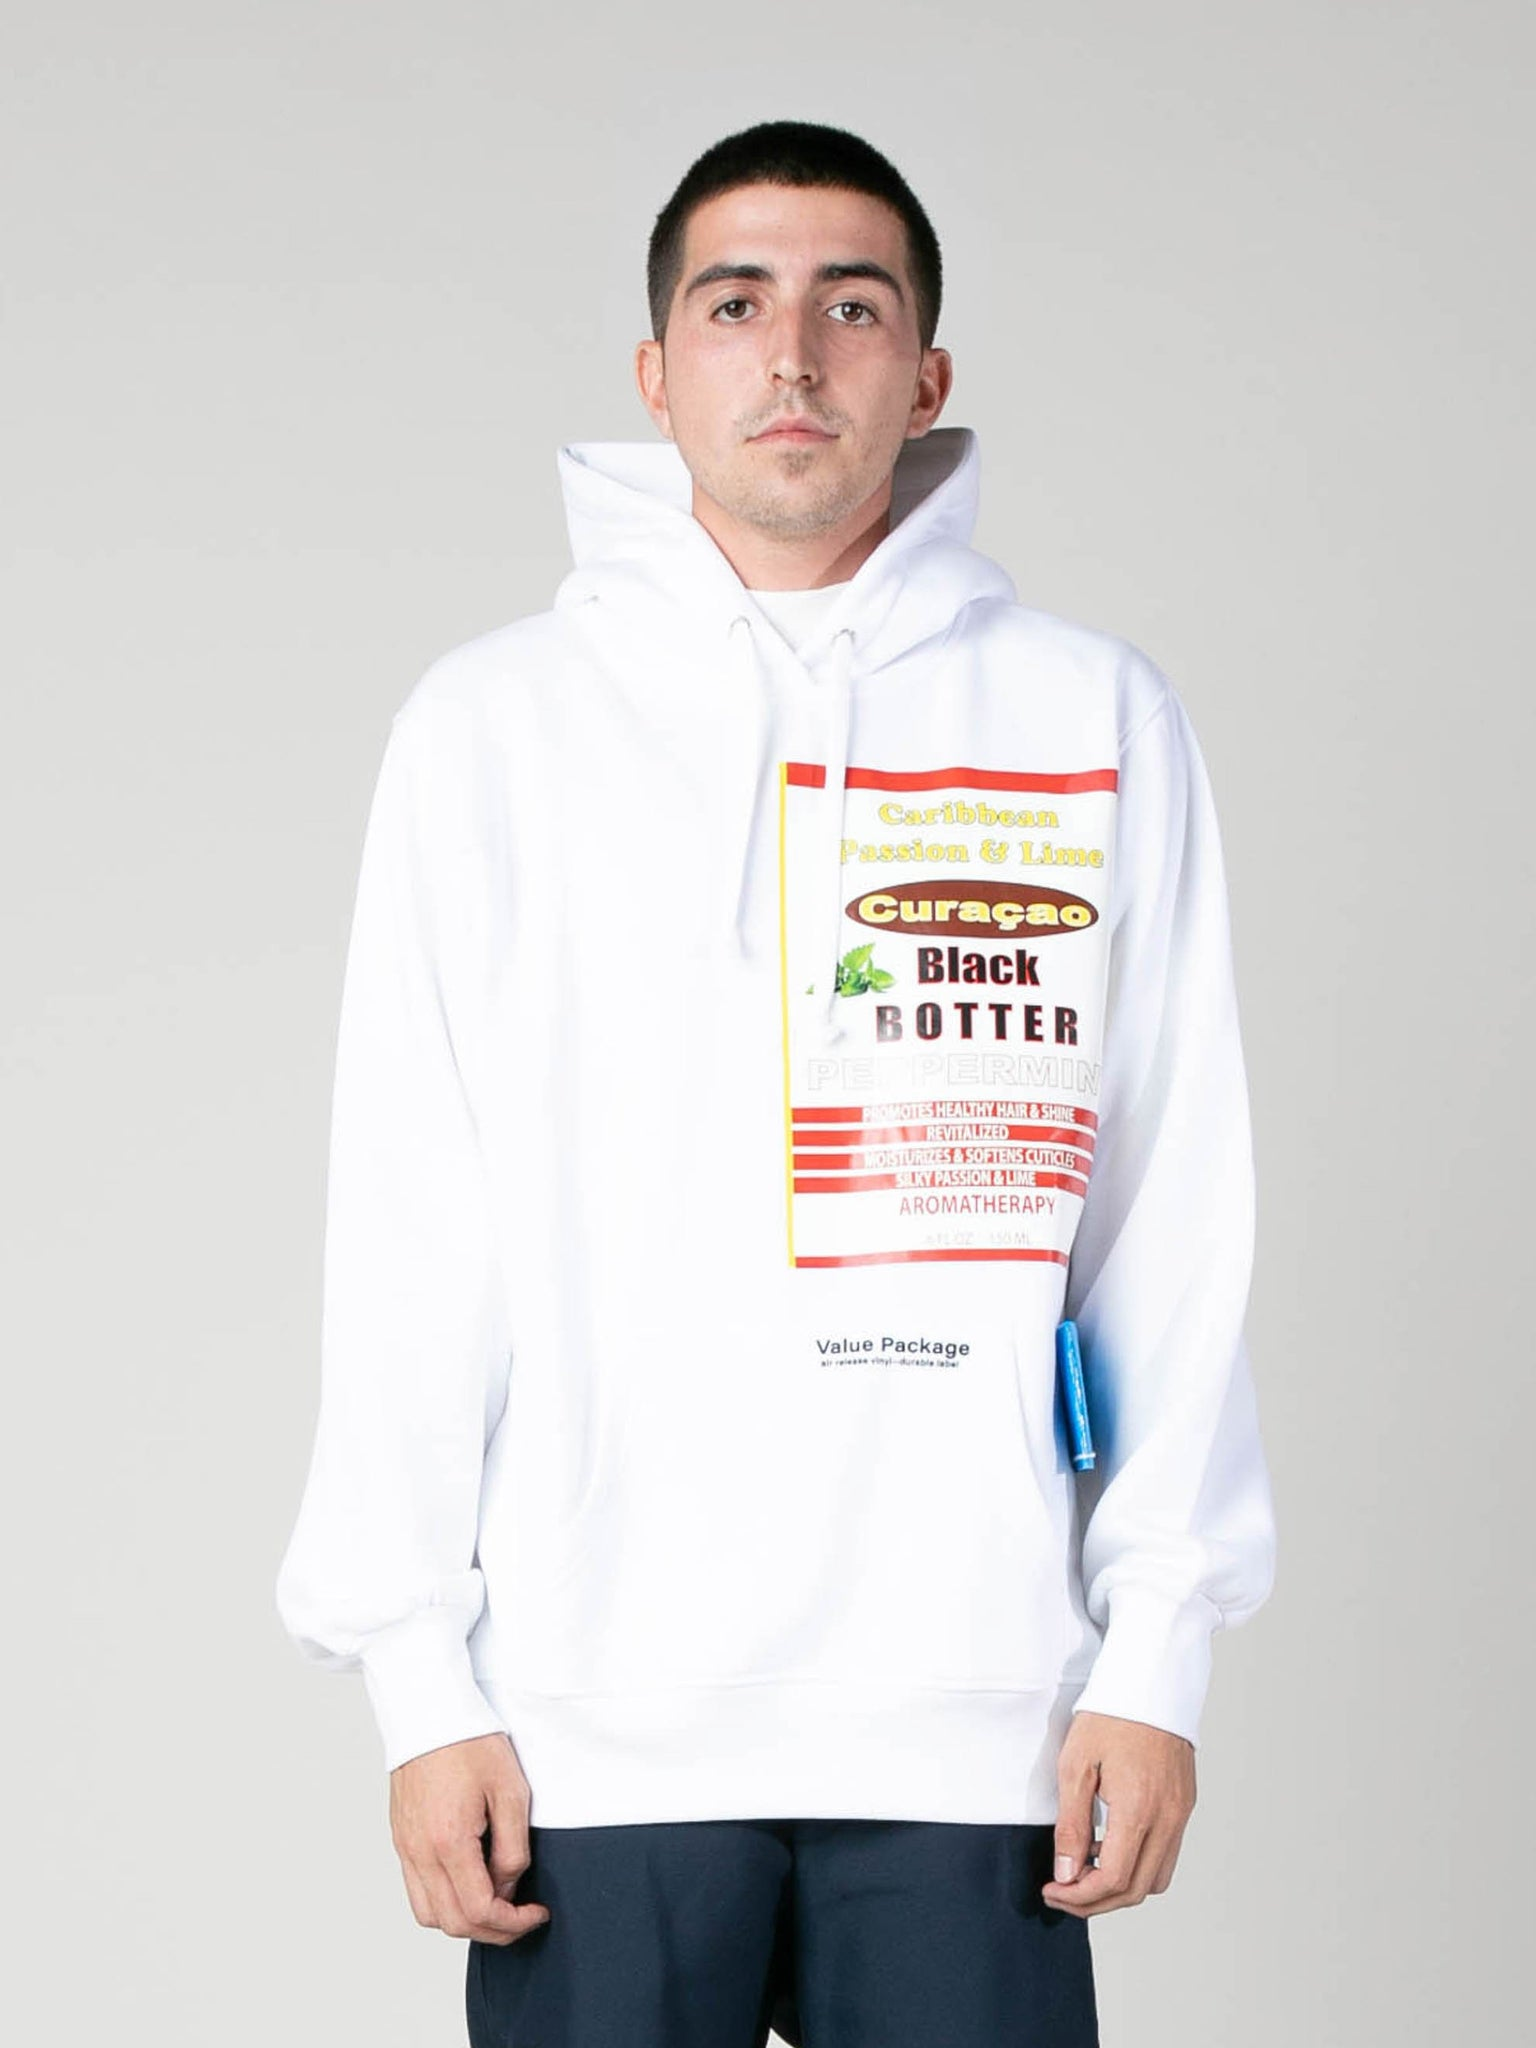 hoody-with-botter-badge